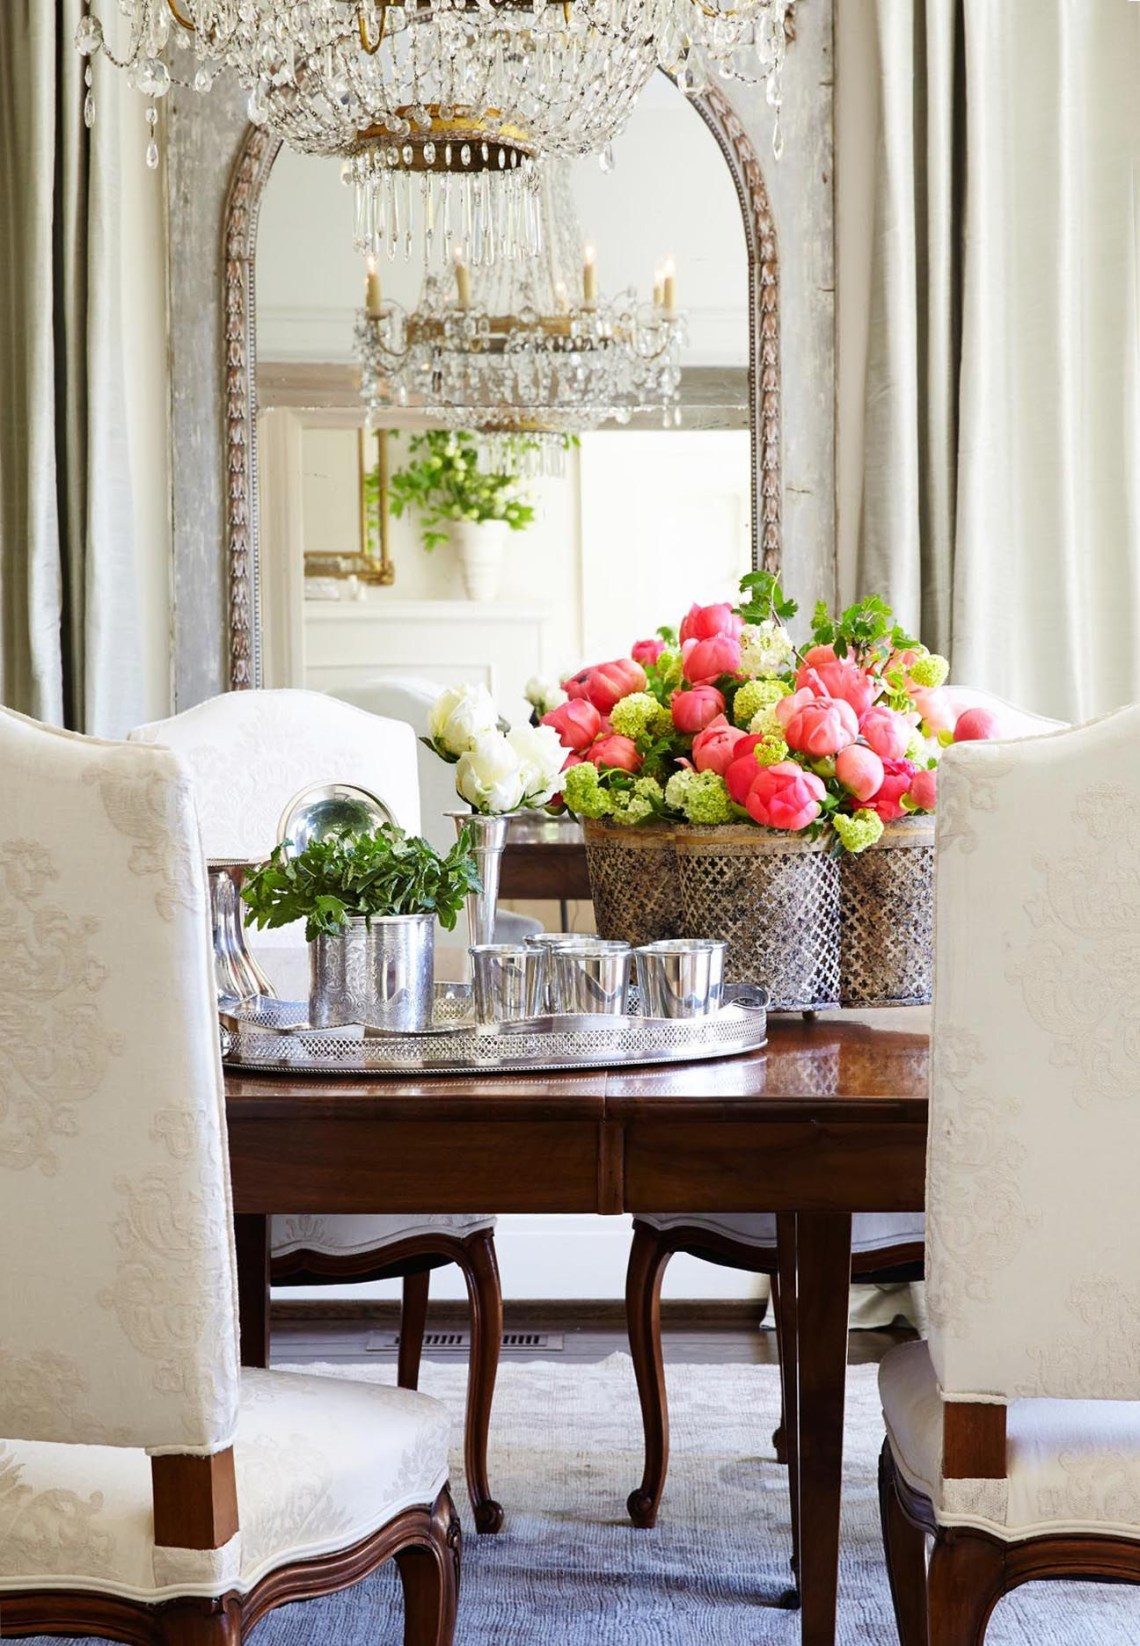 Niermann Weeks Quatrefoil Tole Planter Holds A Colorful Array Of Flowers In This Dining Room